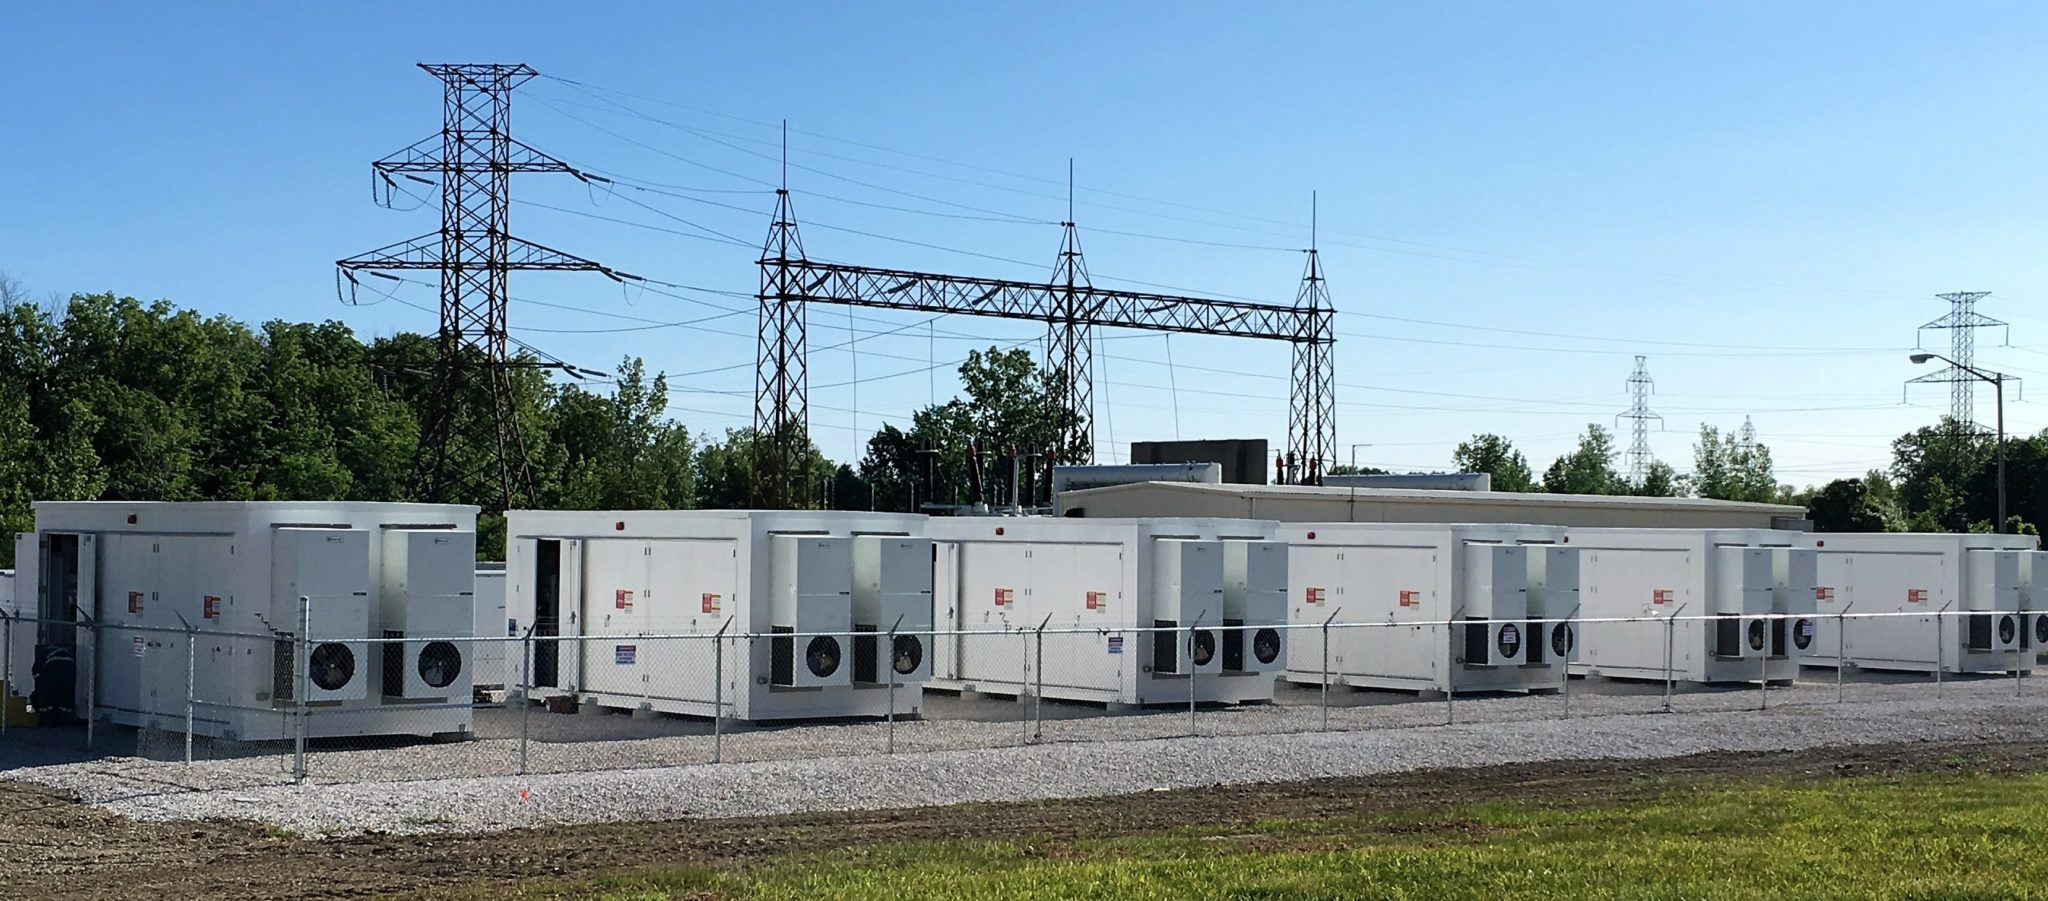 Convergent Commissions The Biggest Behind-the-Meter Energy Storage System in North America